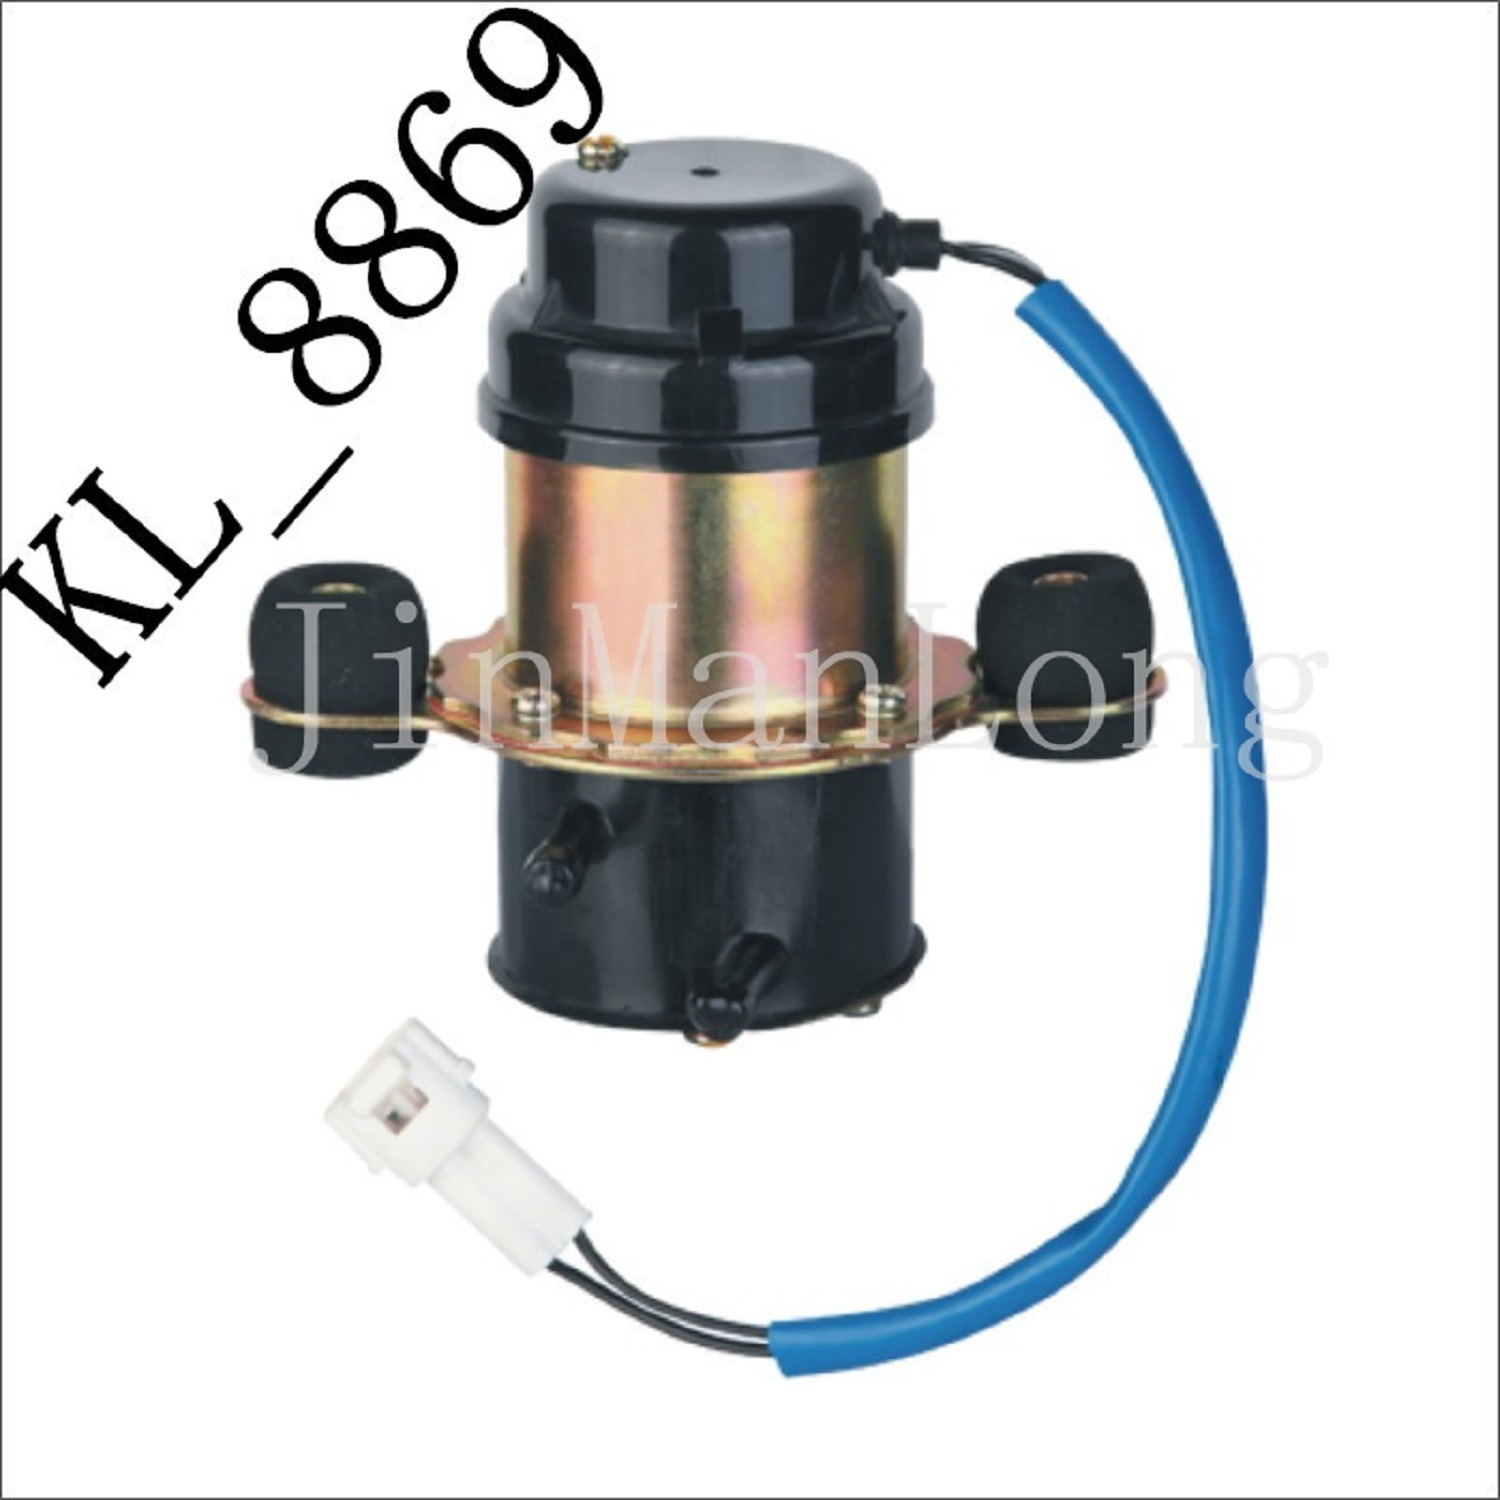 Auto Spare Parts Electric Fuel Pump for Suzuki (UC-J10H: 15100-77500) with Kl-8869